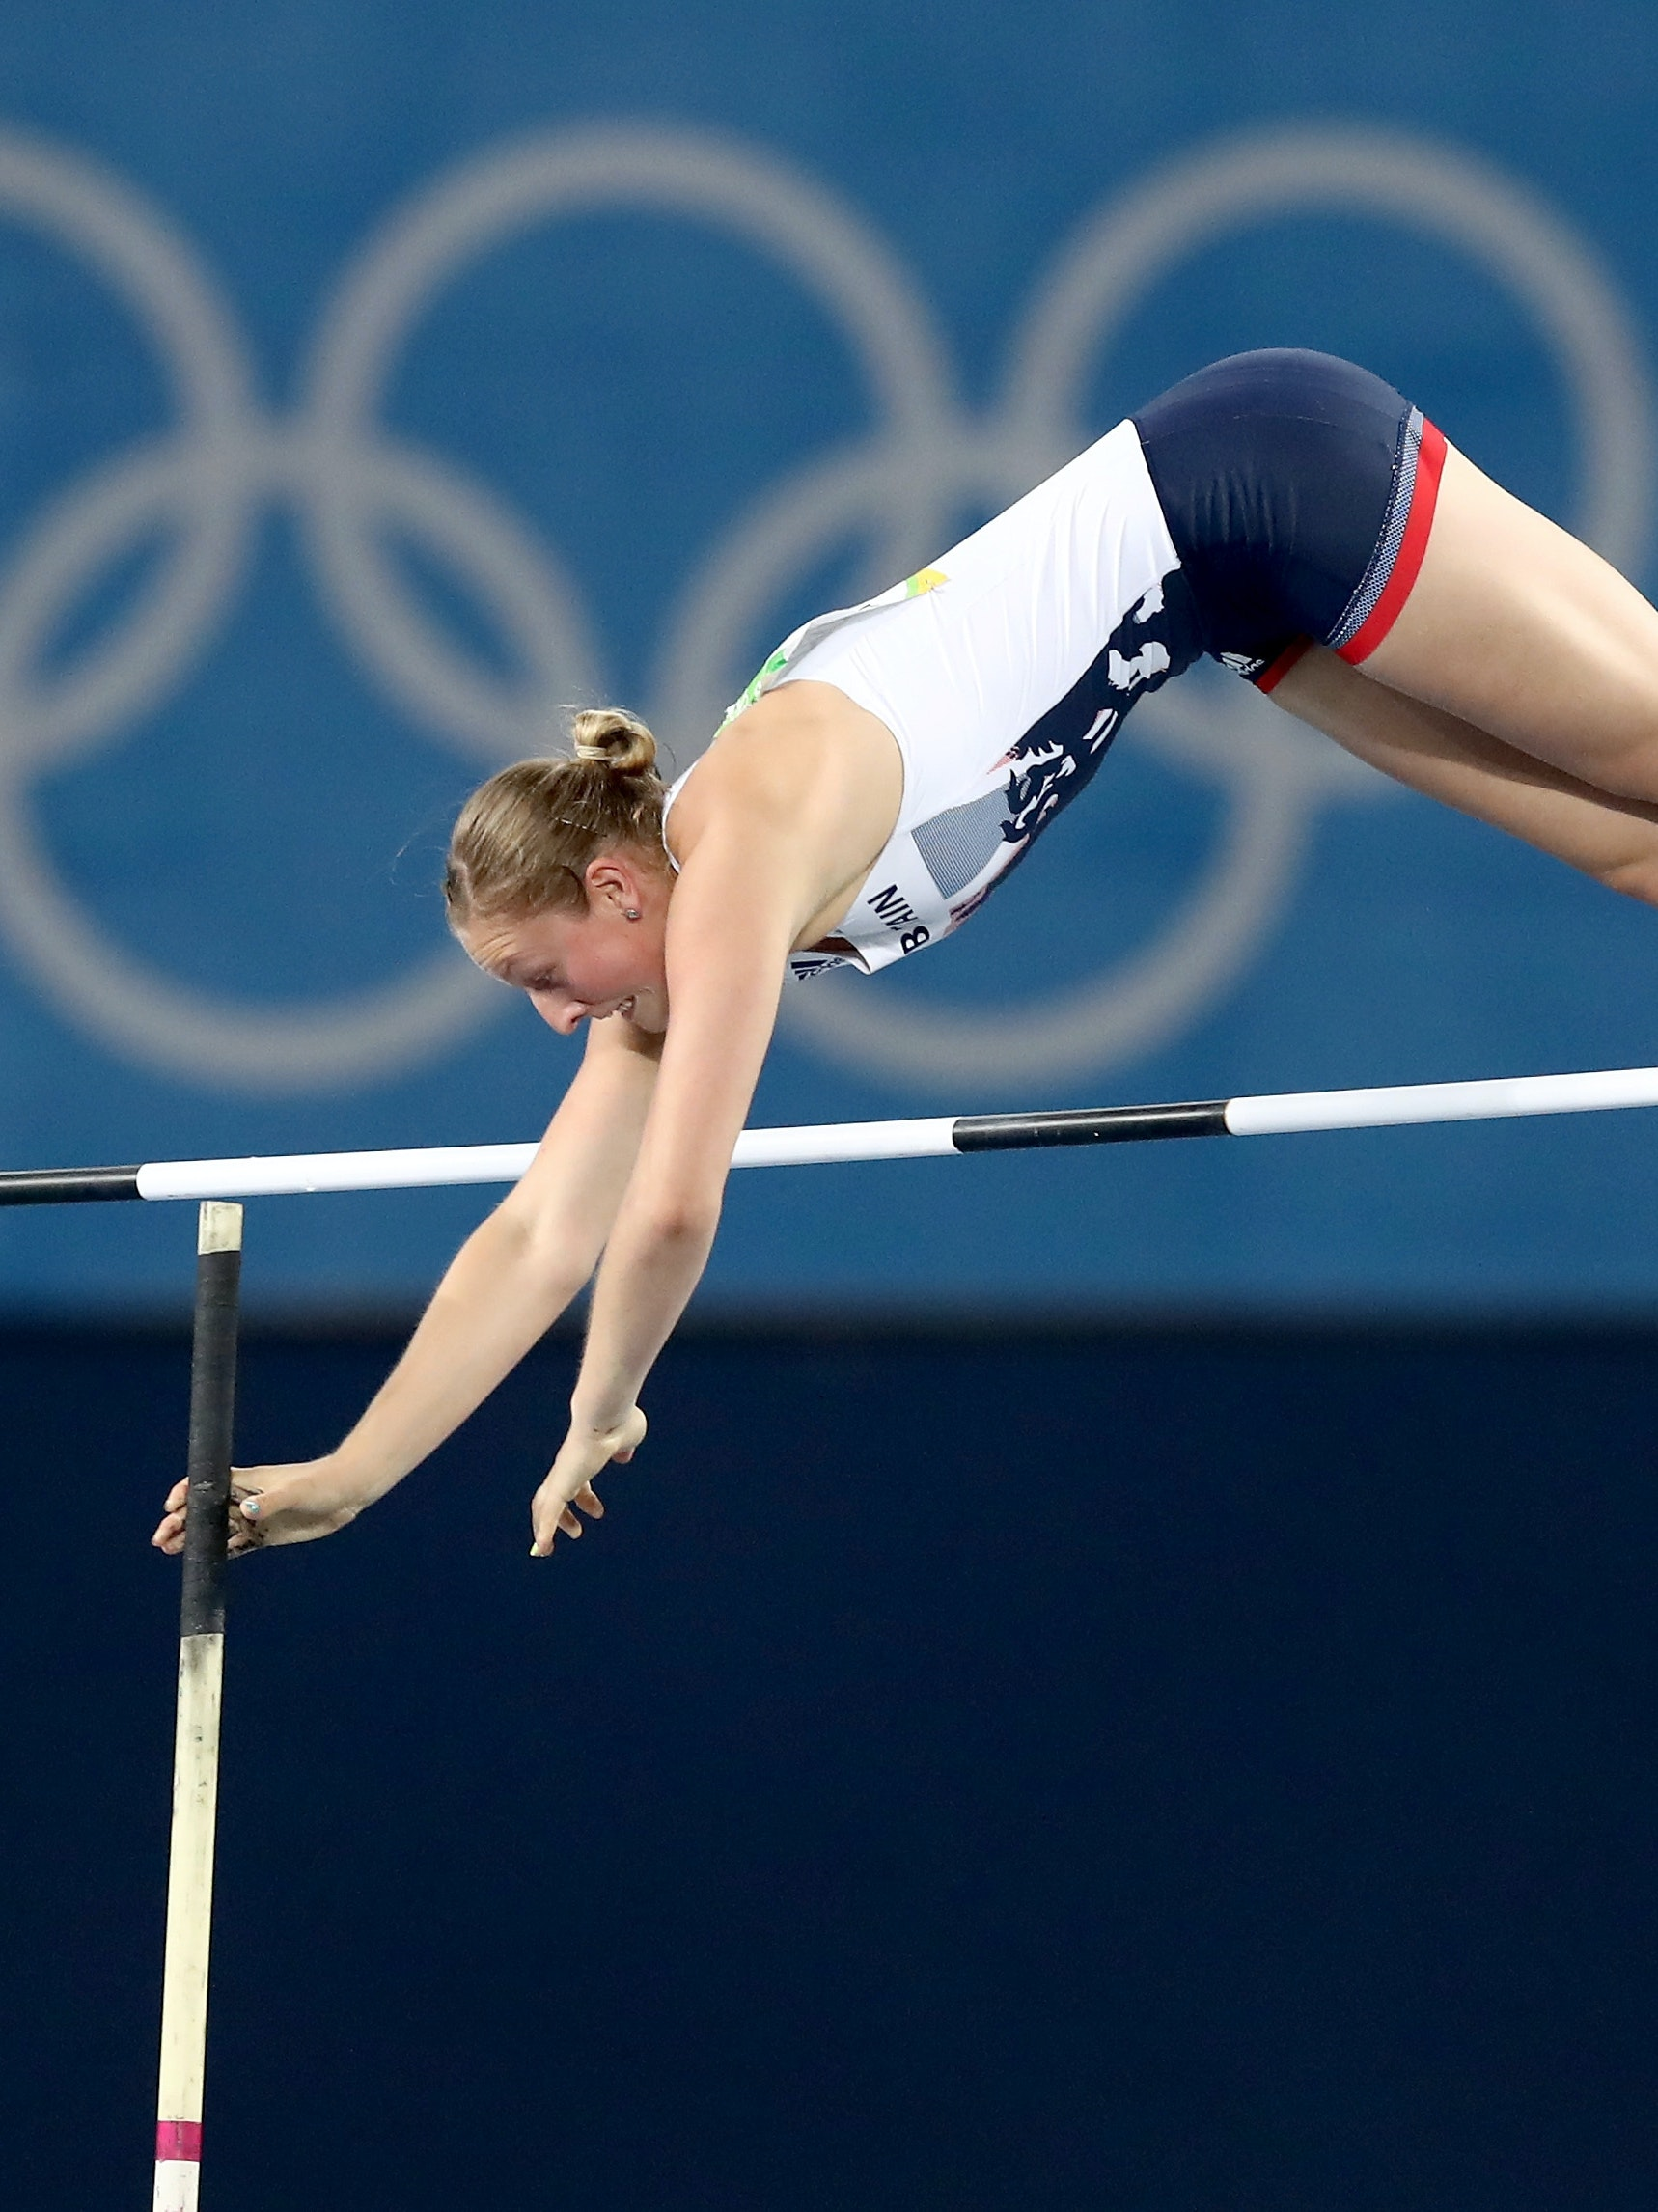 RIO DE JANEIRO, BRAZIL - AUGUST 19:  Holly Bradshaw of Great Britain competes in the Women's Pole Vault Final on Day 14 of the Rio 2016 Olympic Games at the Olympic Stadium on August 19, 2016 in Rio de Janeiro, Brazil.  (Photo by Alexander Hassenstein/Getty Images)